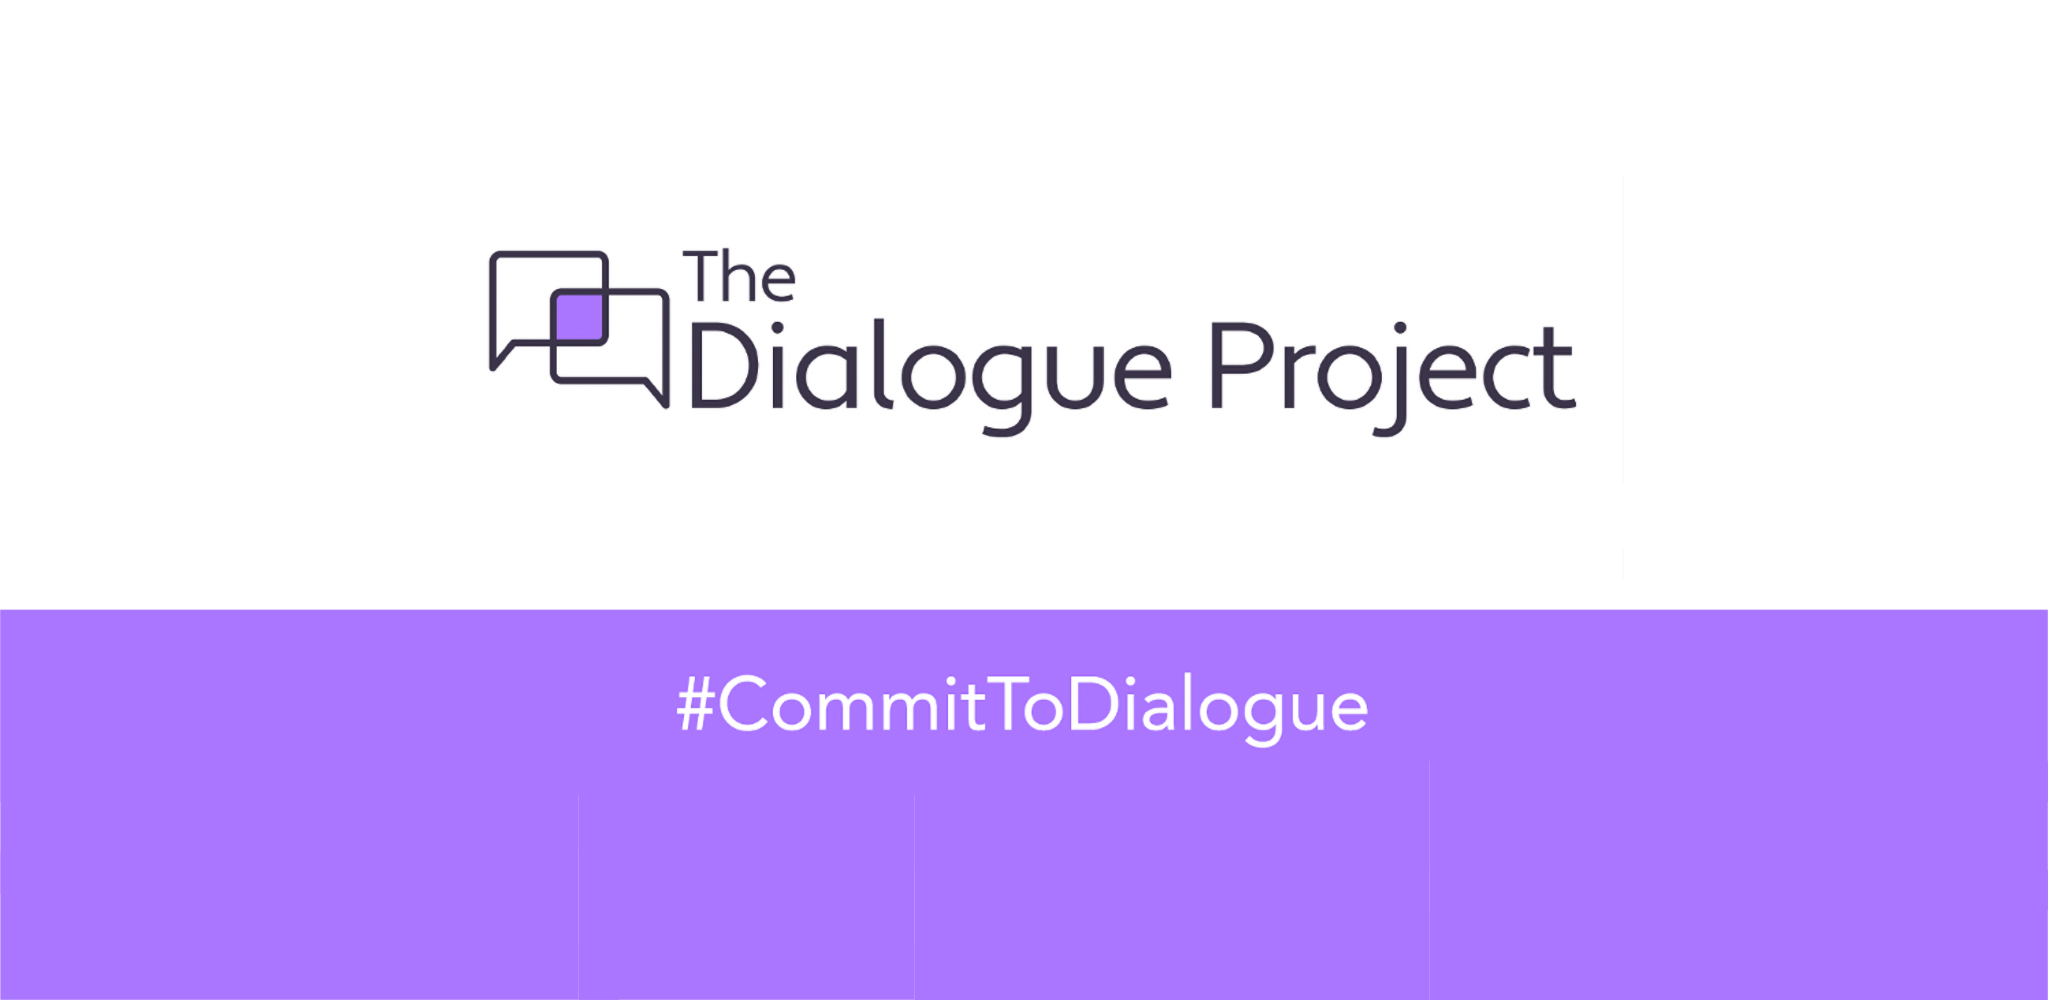 logo and hashtag for The Dialogue Project